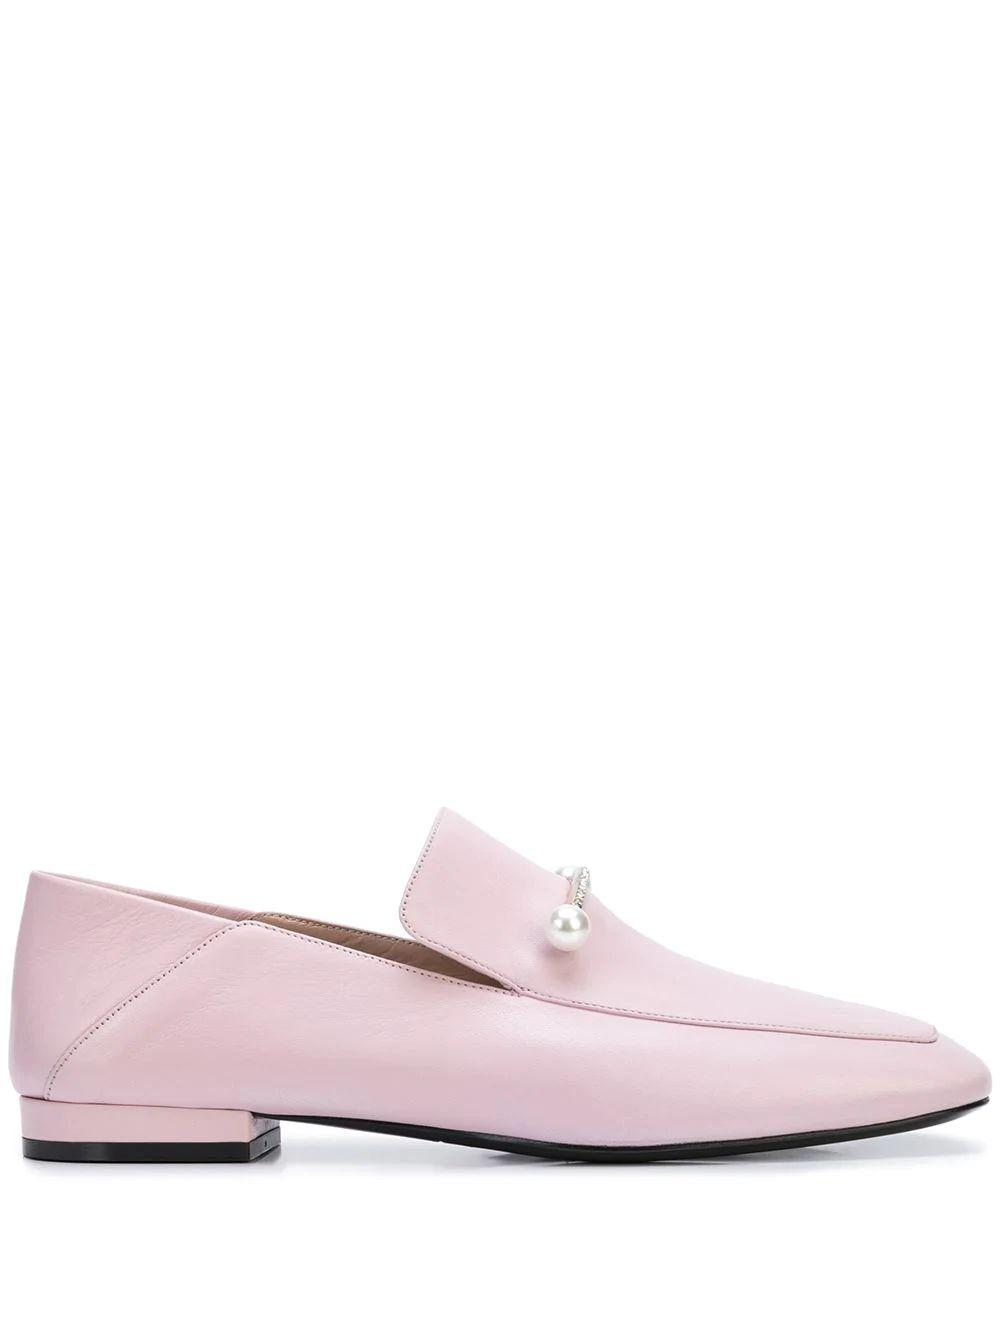 Loafer With Fold Down Heel